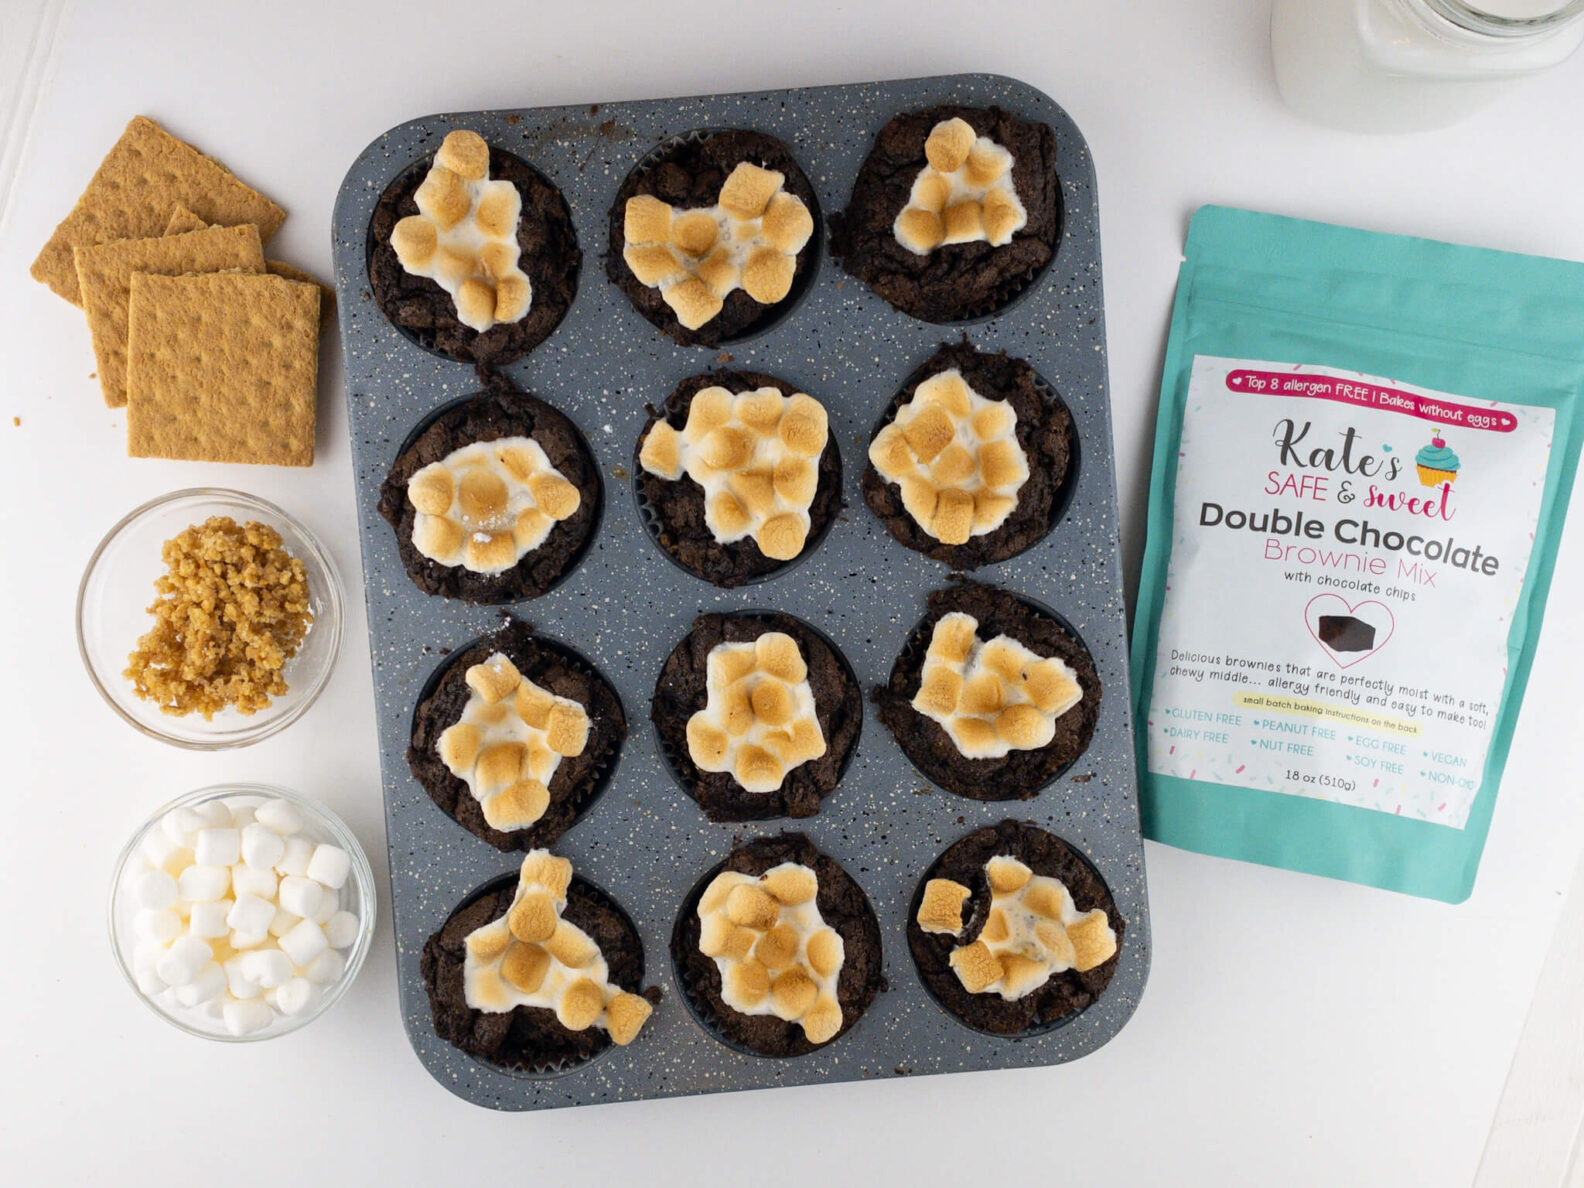 Kate's Safe and Sweet - Smores Brownie Cupcakes Tray and Ingredients